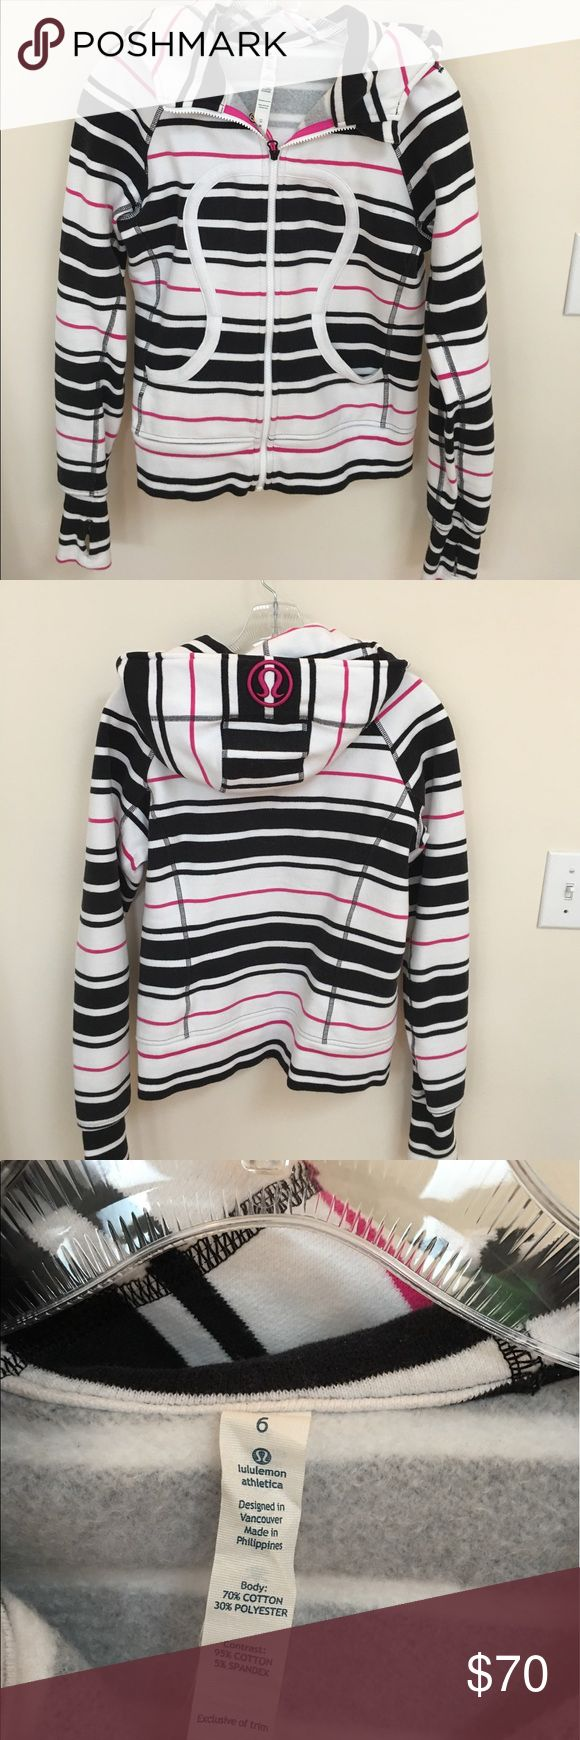 Rare Lululemon Scuba Hoodie Like new condition. Lululemon scuba hoodie. White pink and black. Worn only a few times. Size 6 lululemon athletica Jackets & Coats